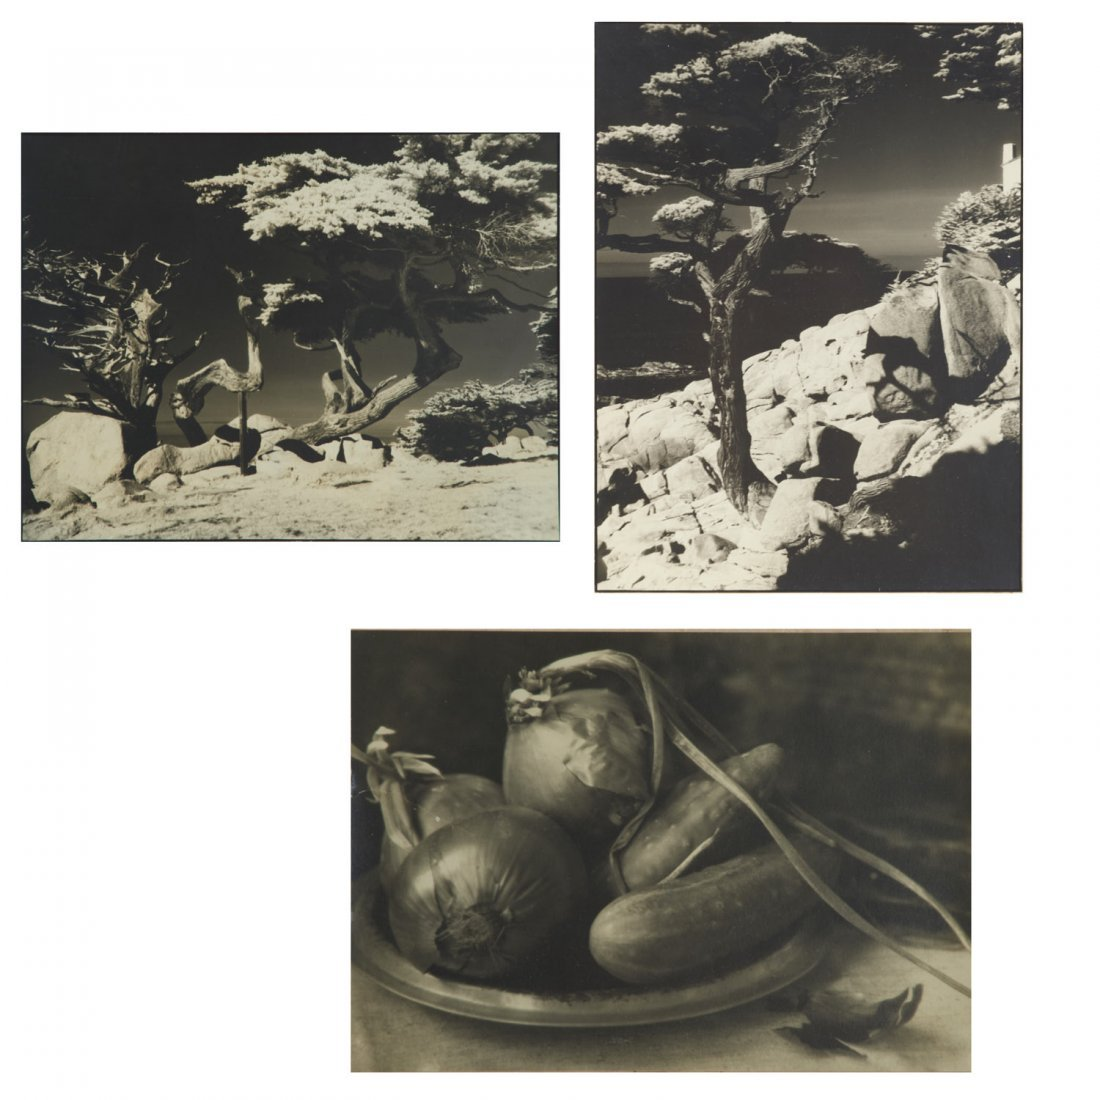 William T. Higbee, (3) photograph prints